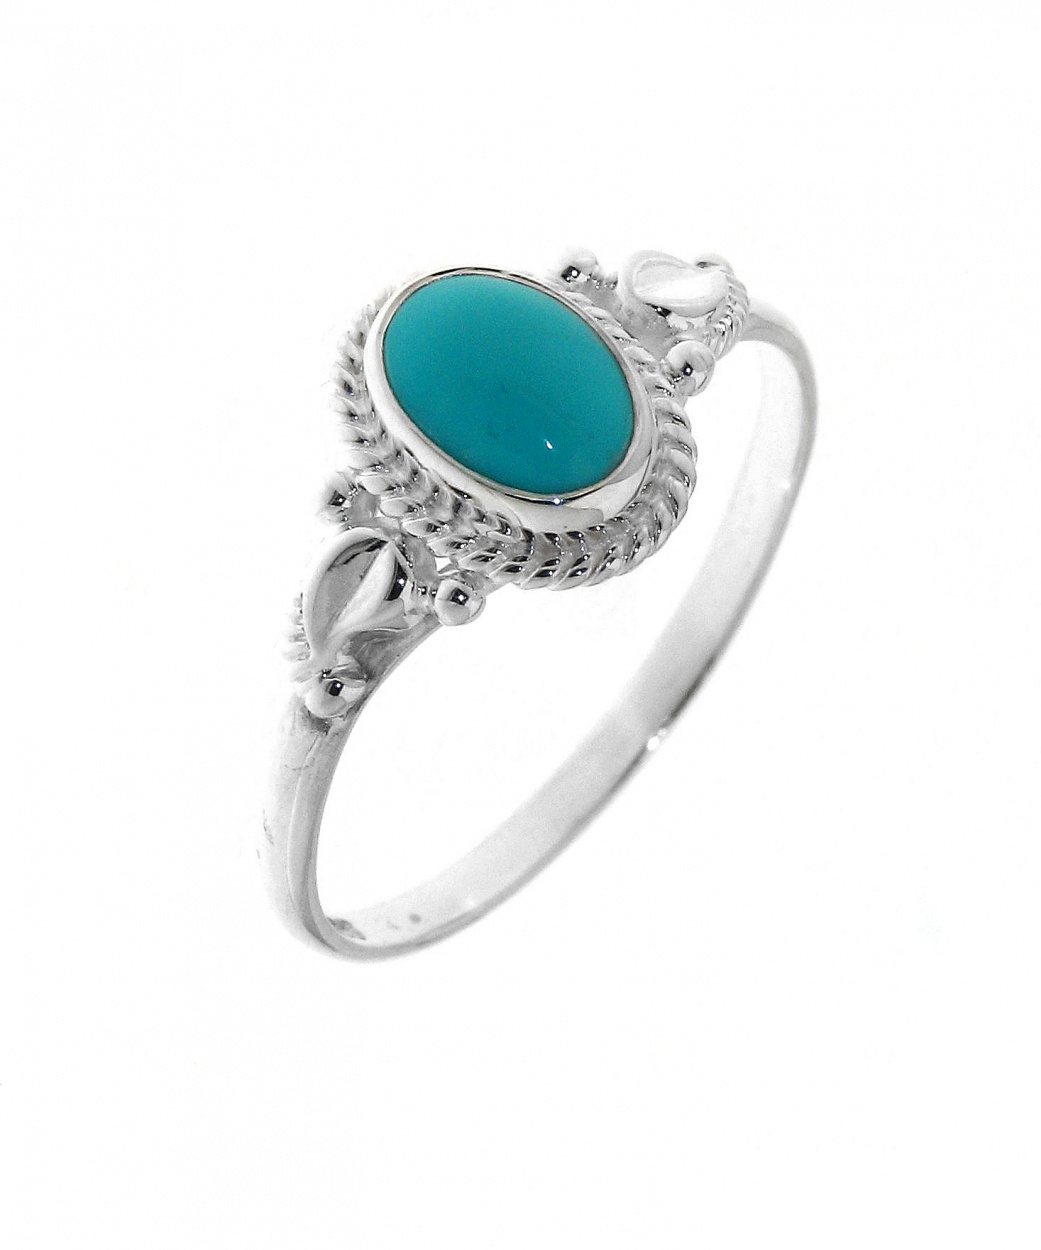 Haut Bague Argent 925 Turquoise ovale 7x5mm Ref. 32073 NA19